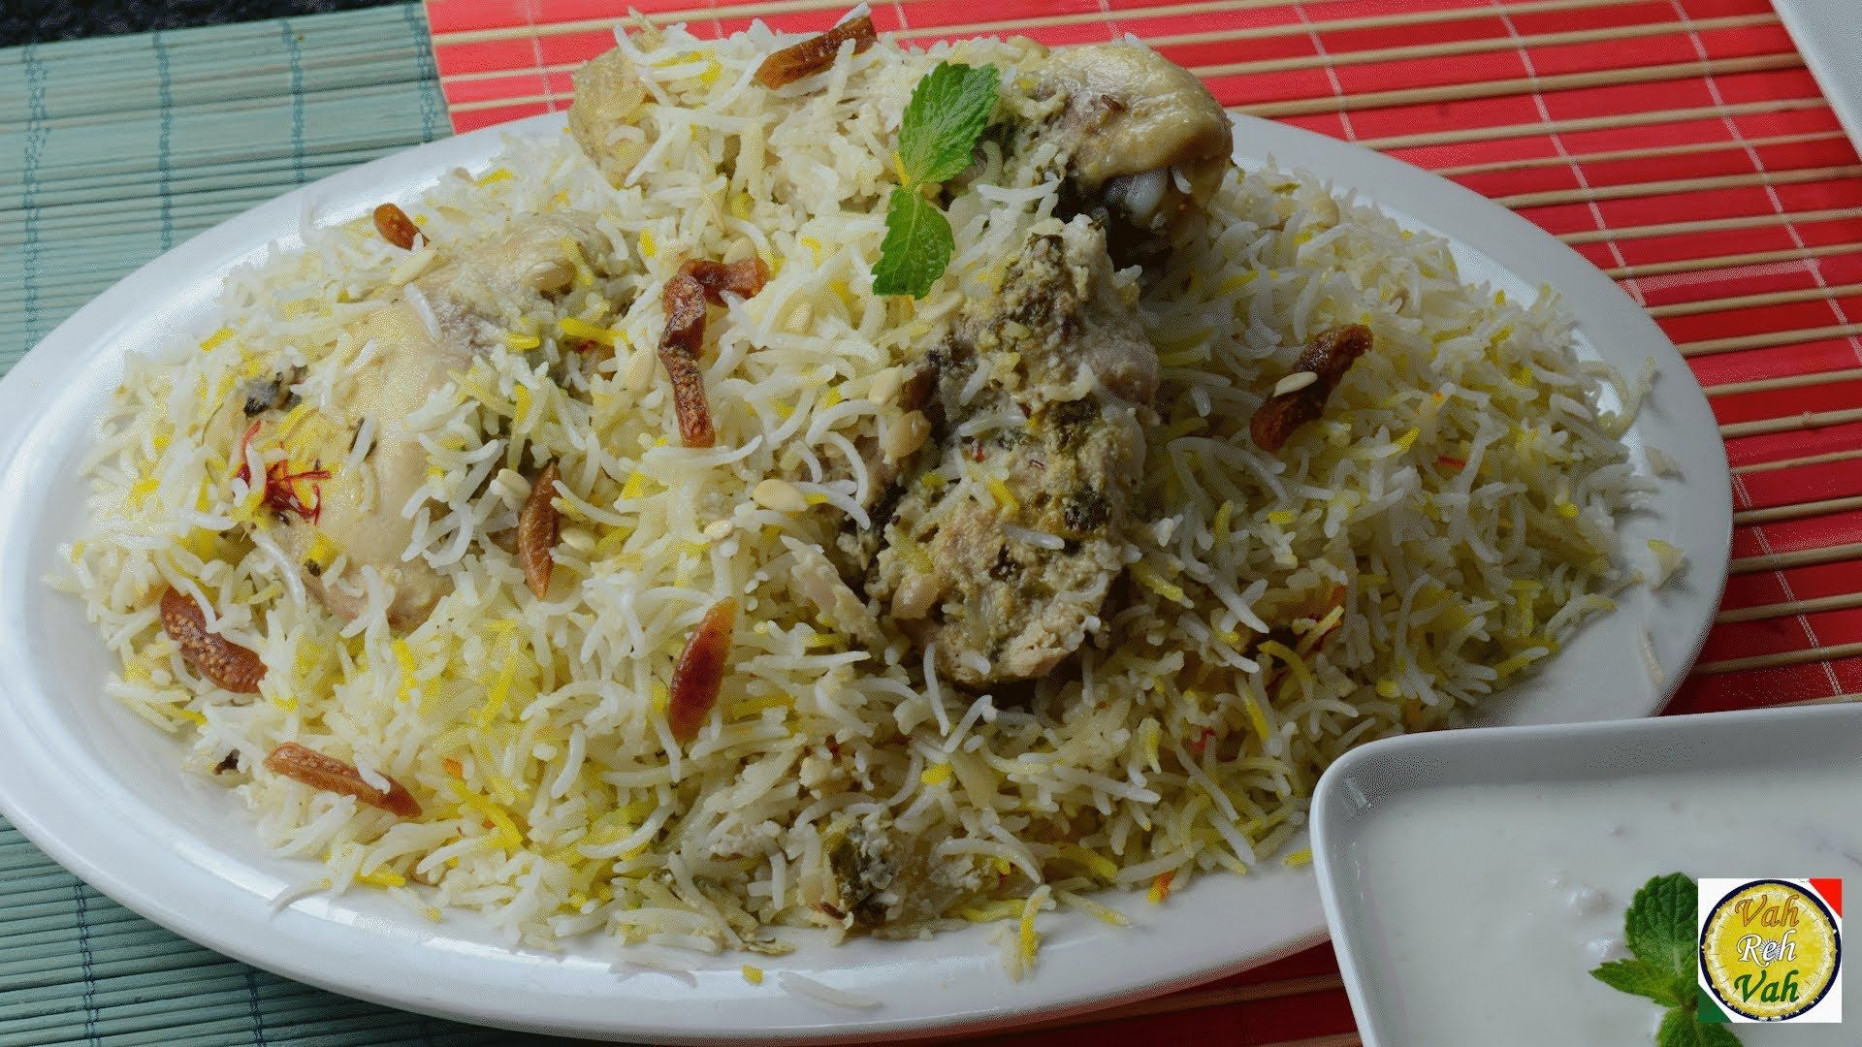 VahChef Special White Chicken Biryani - By VahChef ..